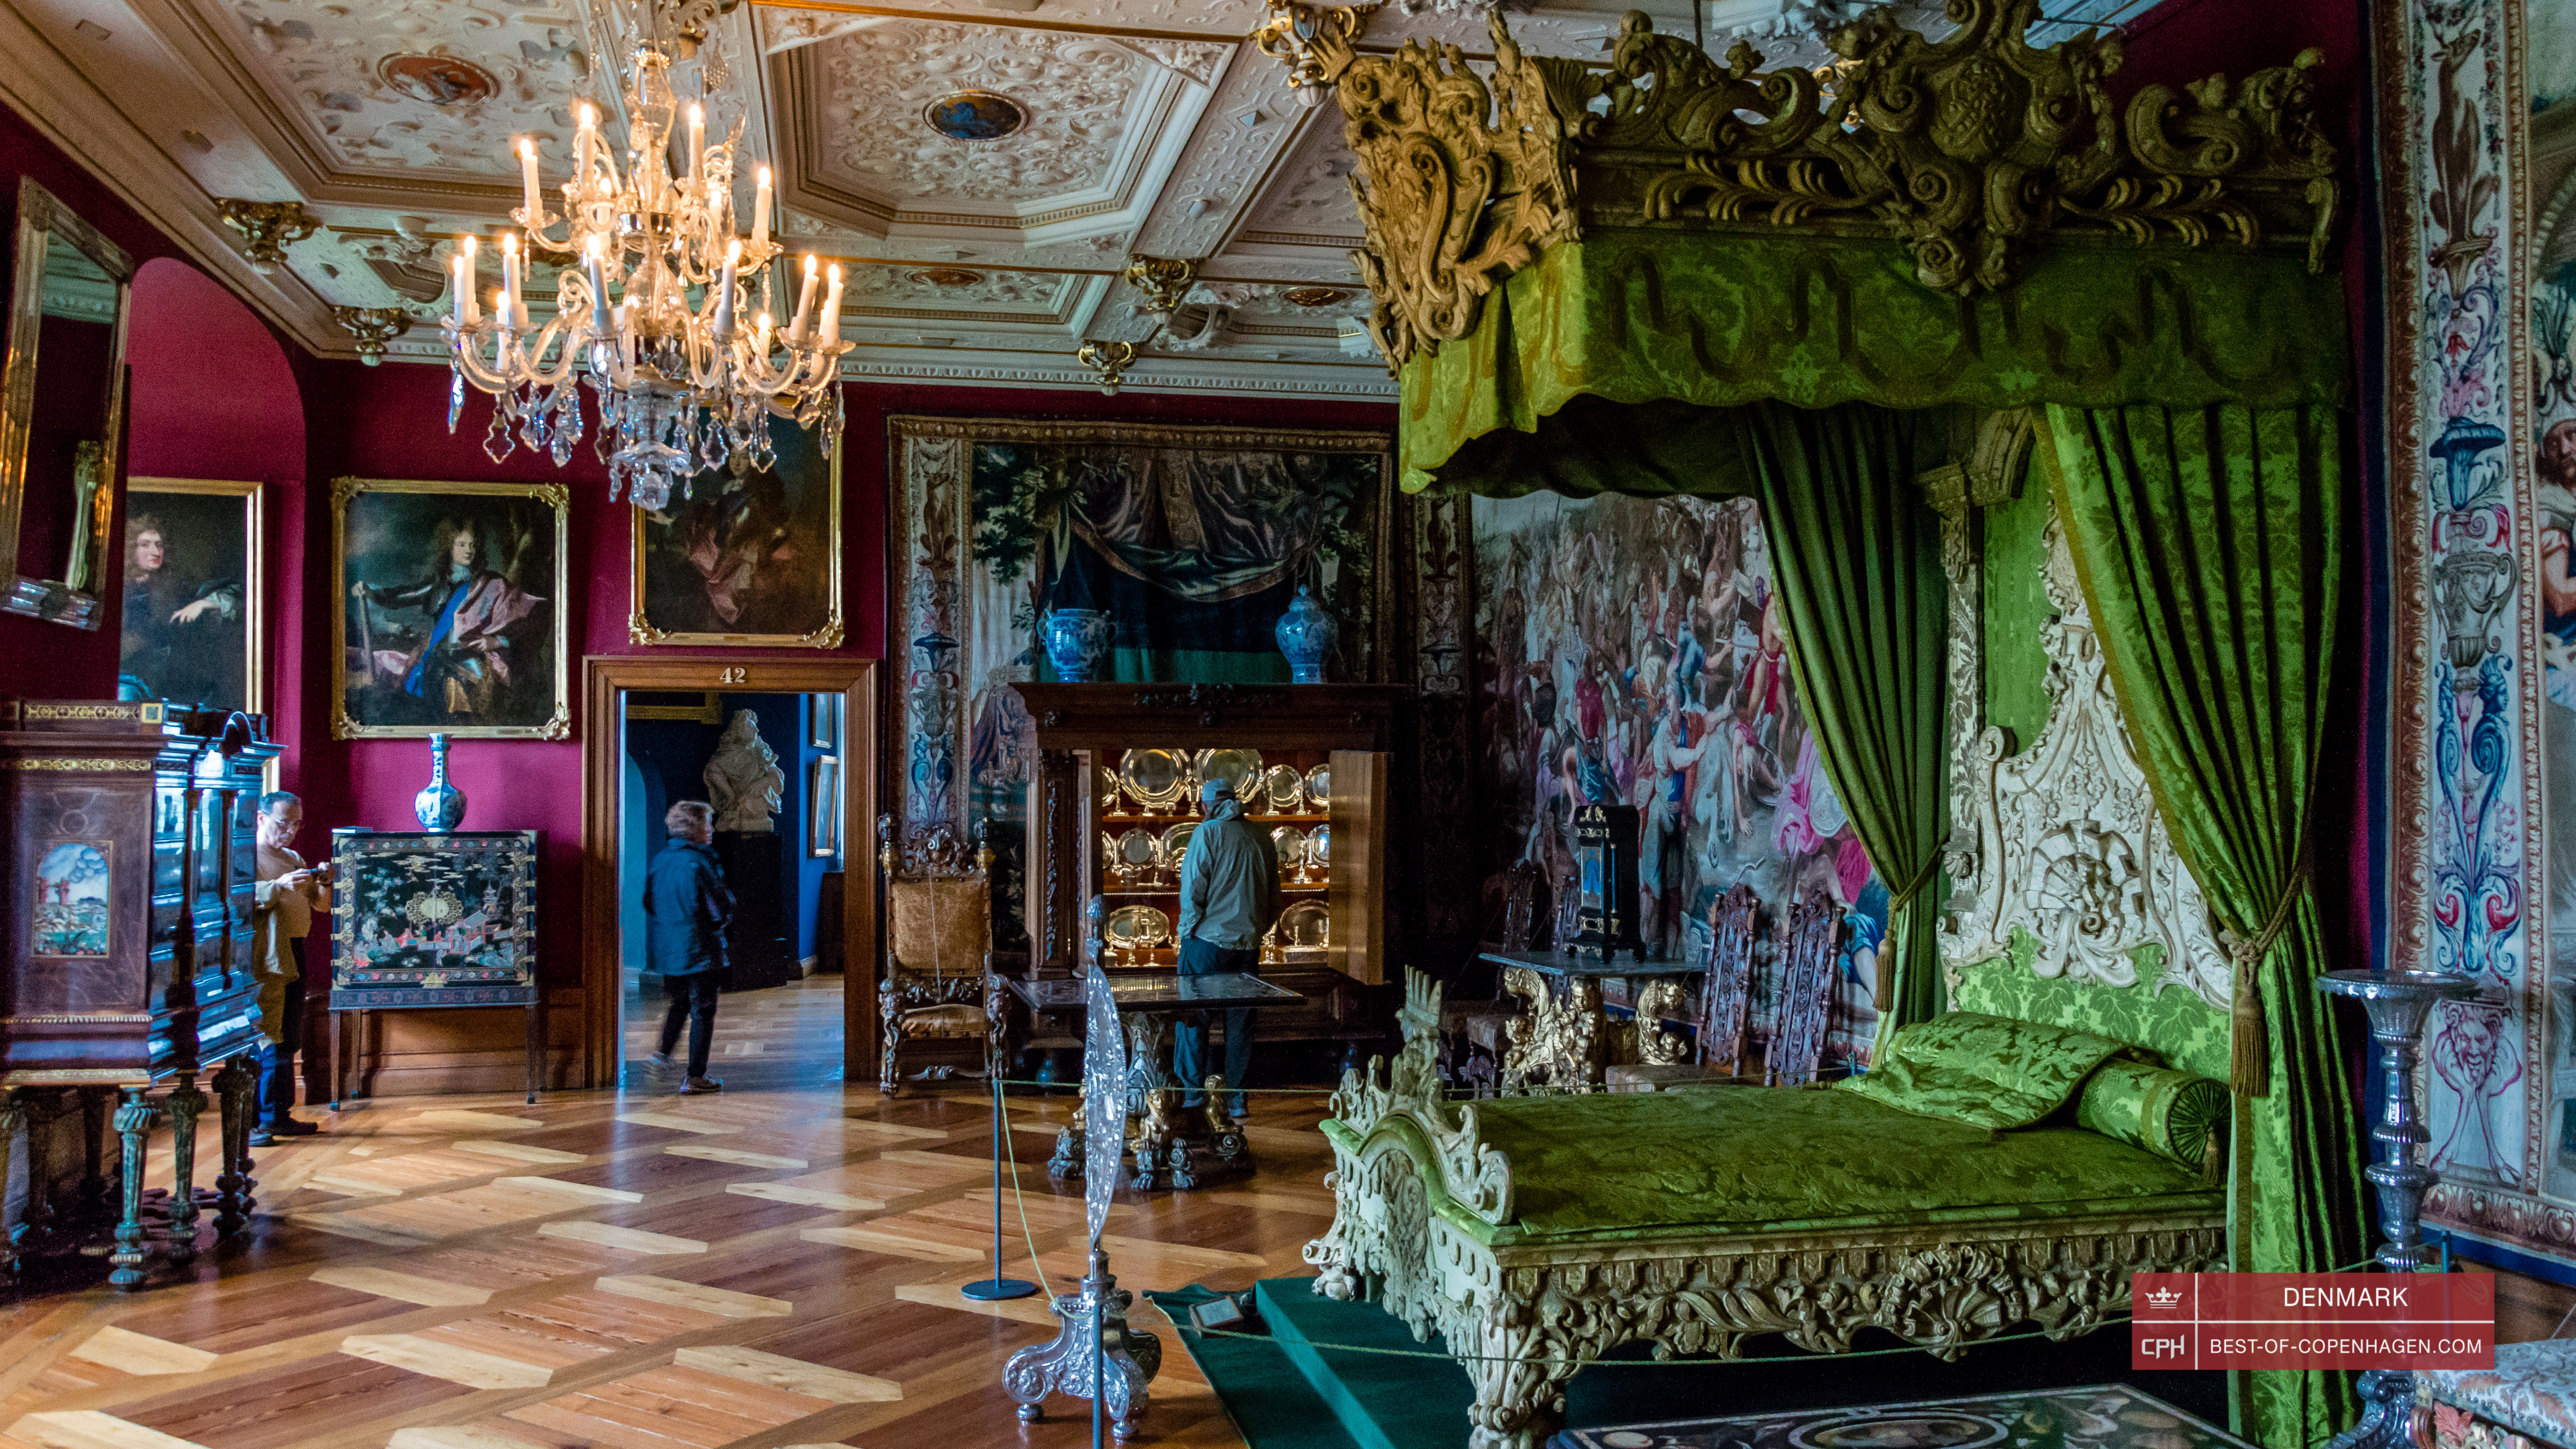 Queen's bedroom in Frederiksborg Castle in Hillerød, Near Copenhagen, Denmark